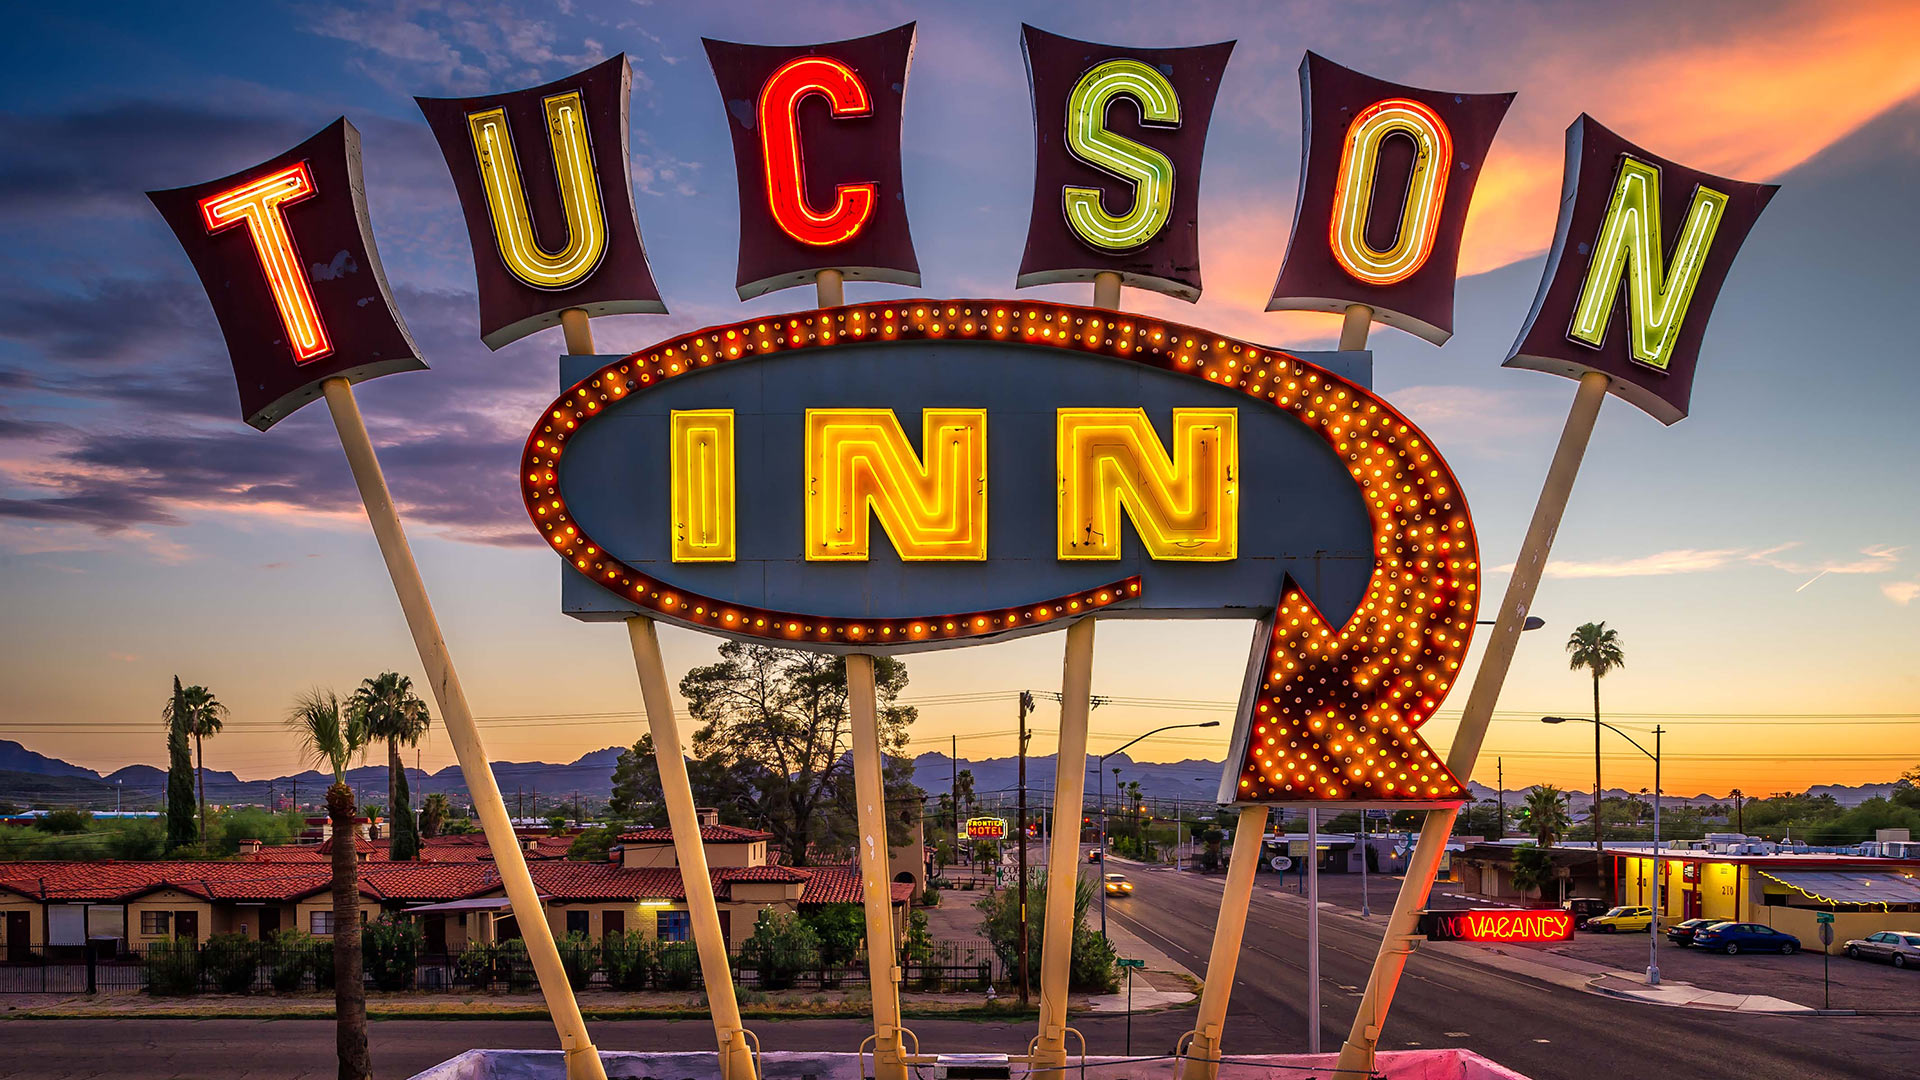 The iconic sign of the the Tucson Inn on Drachman Street.